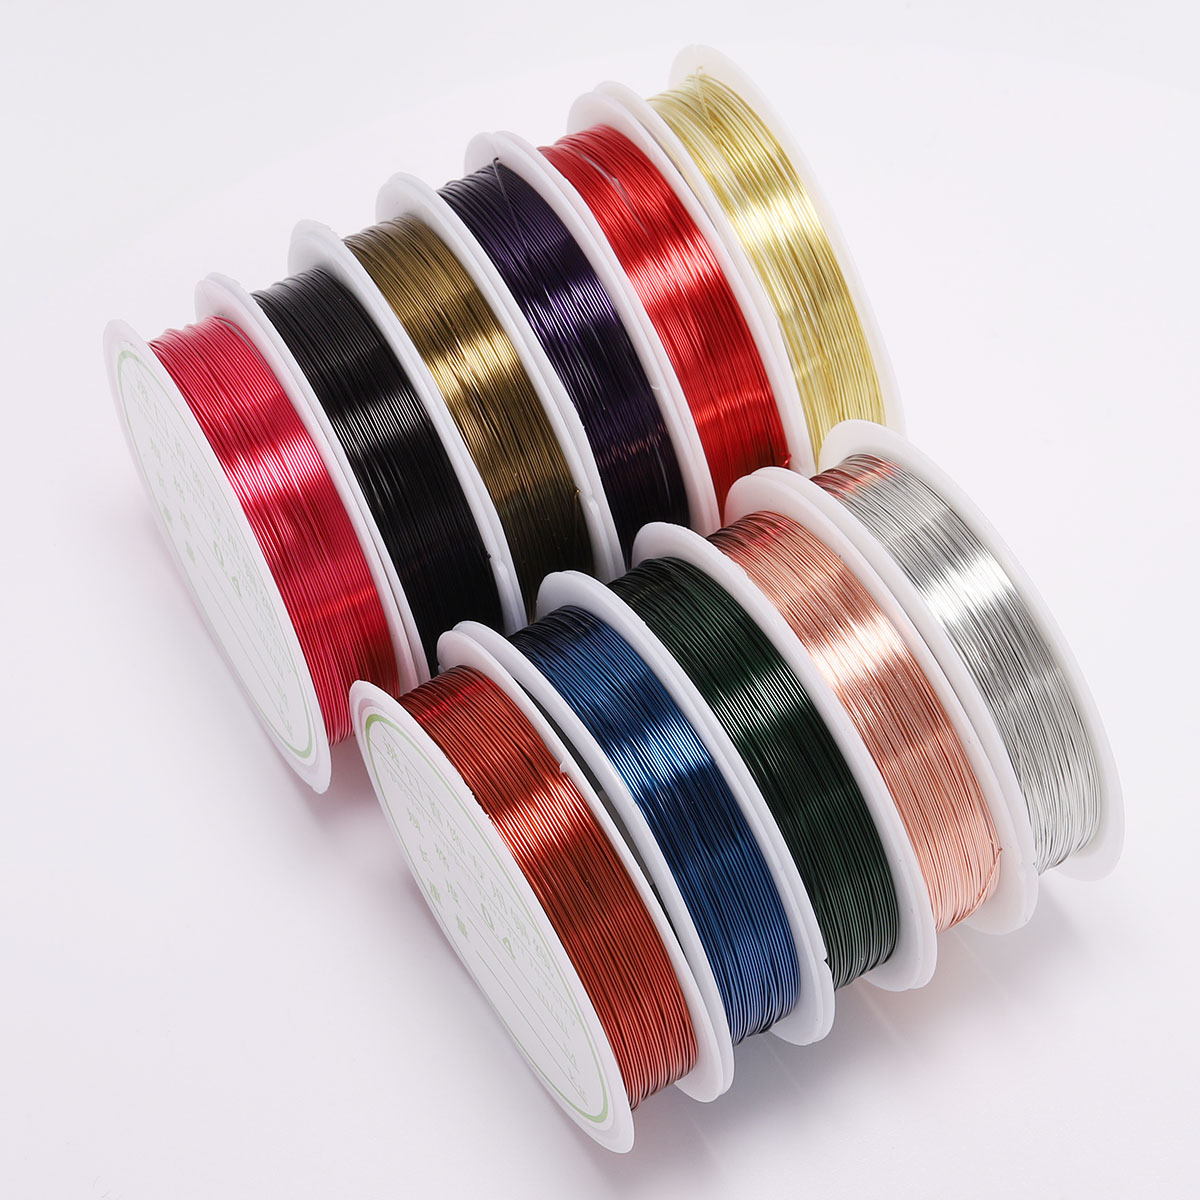 Red Beading Craft Copper Wire Jewellery Making Finding Choose Colour Size 10 Metres By Accessories Attic